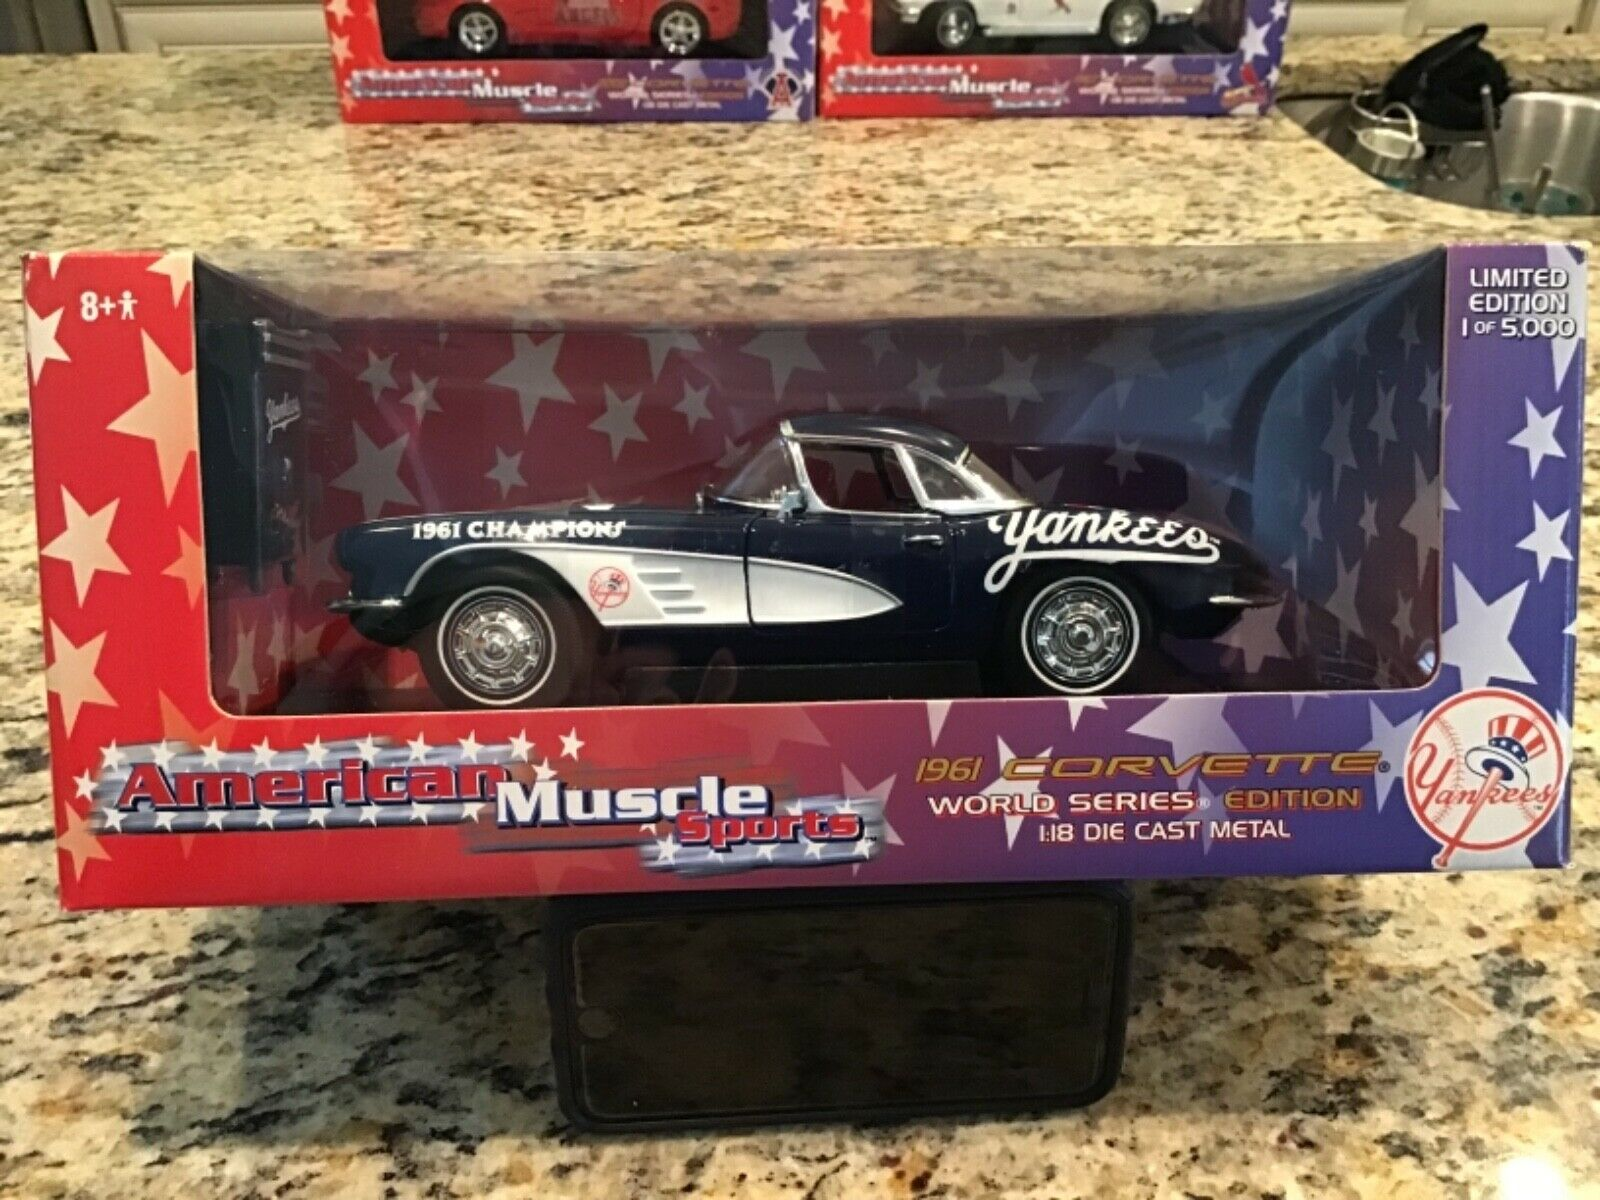 American Muscle Sports 1 18th Scale 1961 Corvette World Series New York Yankees